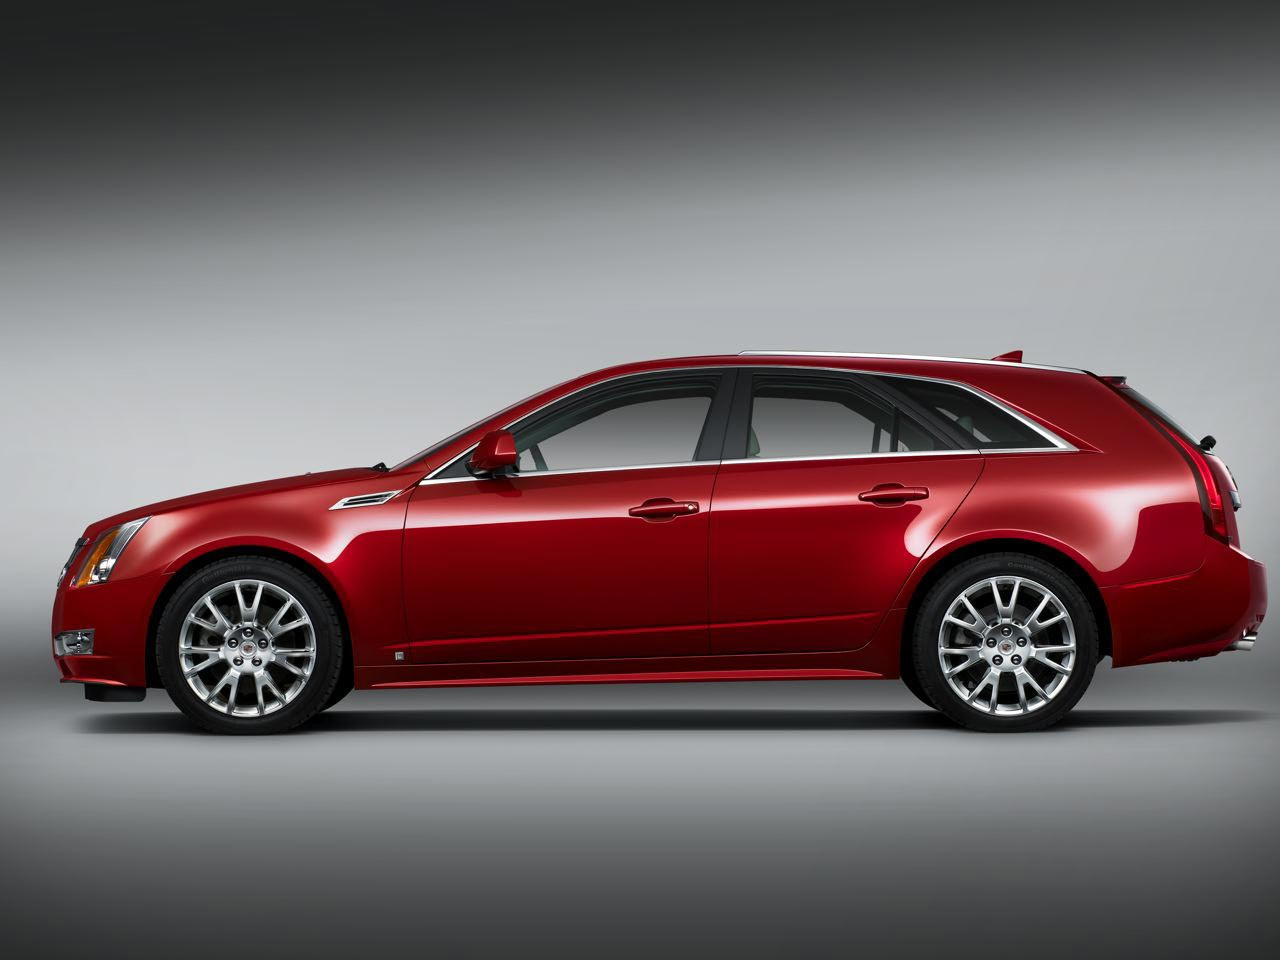 2010 Cadillac CTS Sport Wagon Takes Driving to the Next ...